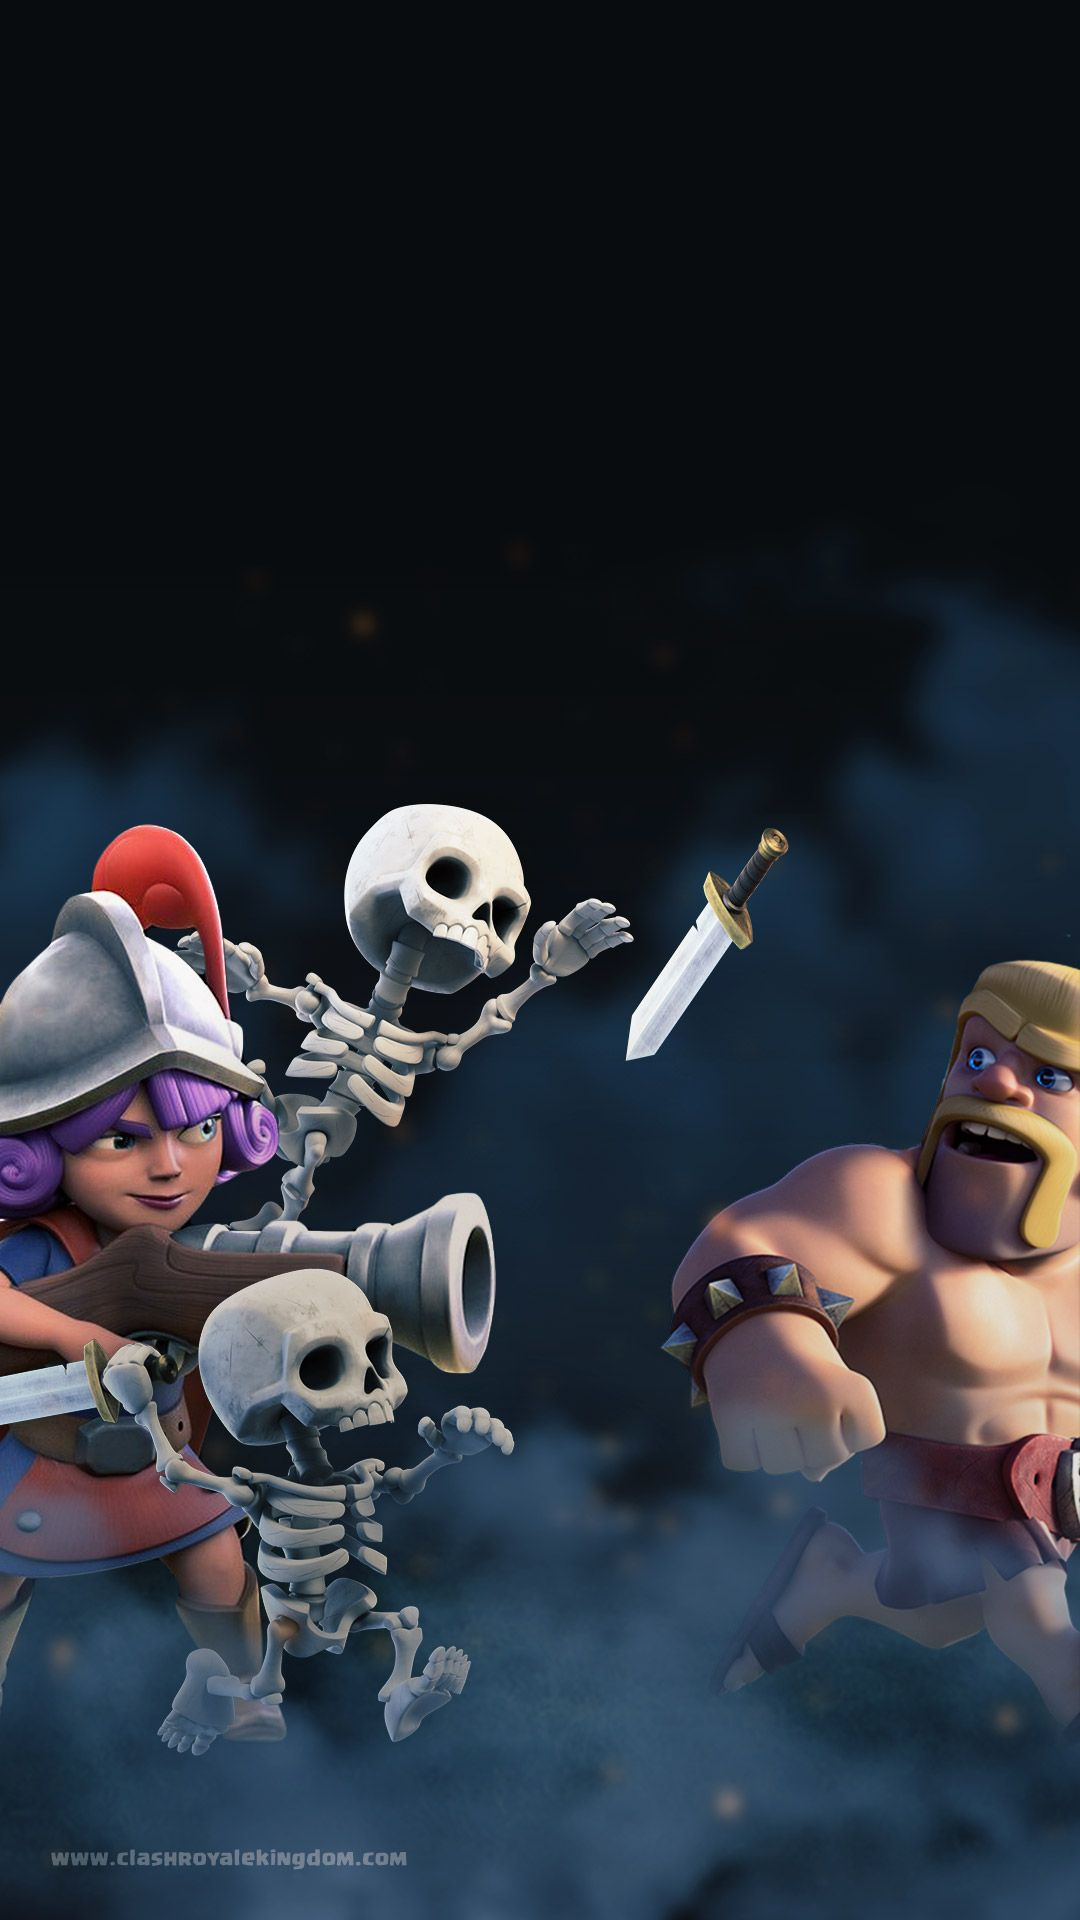 Outbreak Clash Royale Wallpaper Clash Royale Kingdom Clash Of